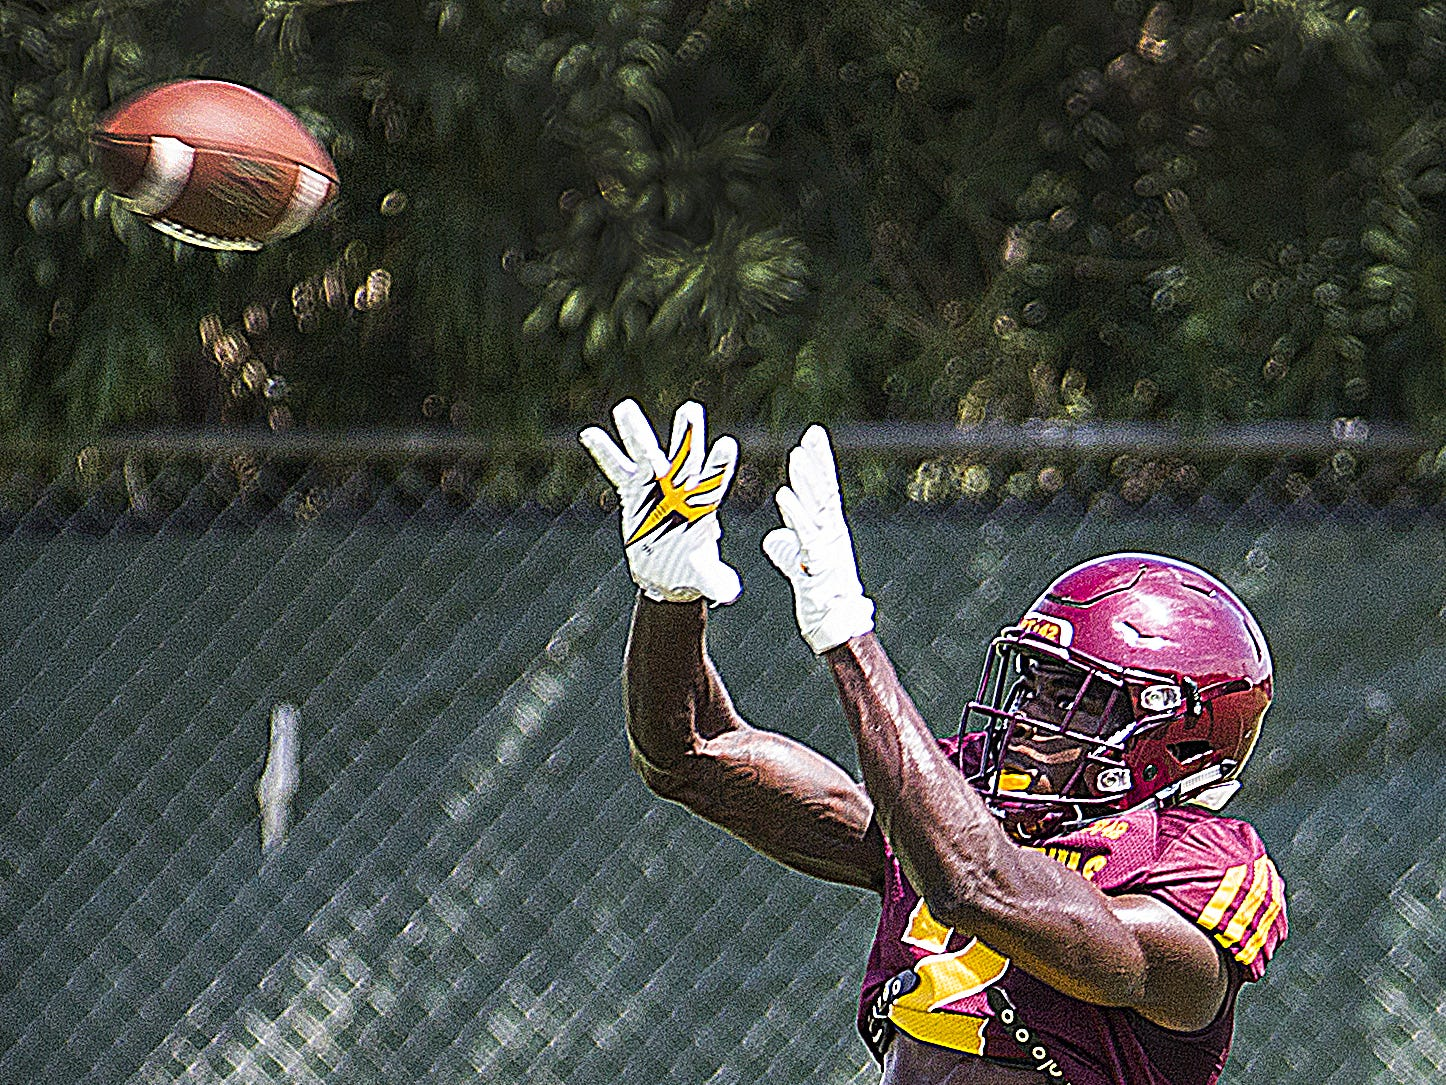 Arizona State University receiver Brandon Aiyuk catches a pass at practice in Tempe, Tuesday, August 21, 2018.